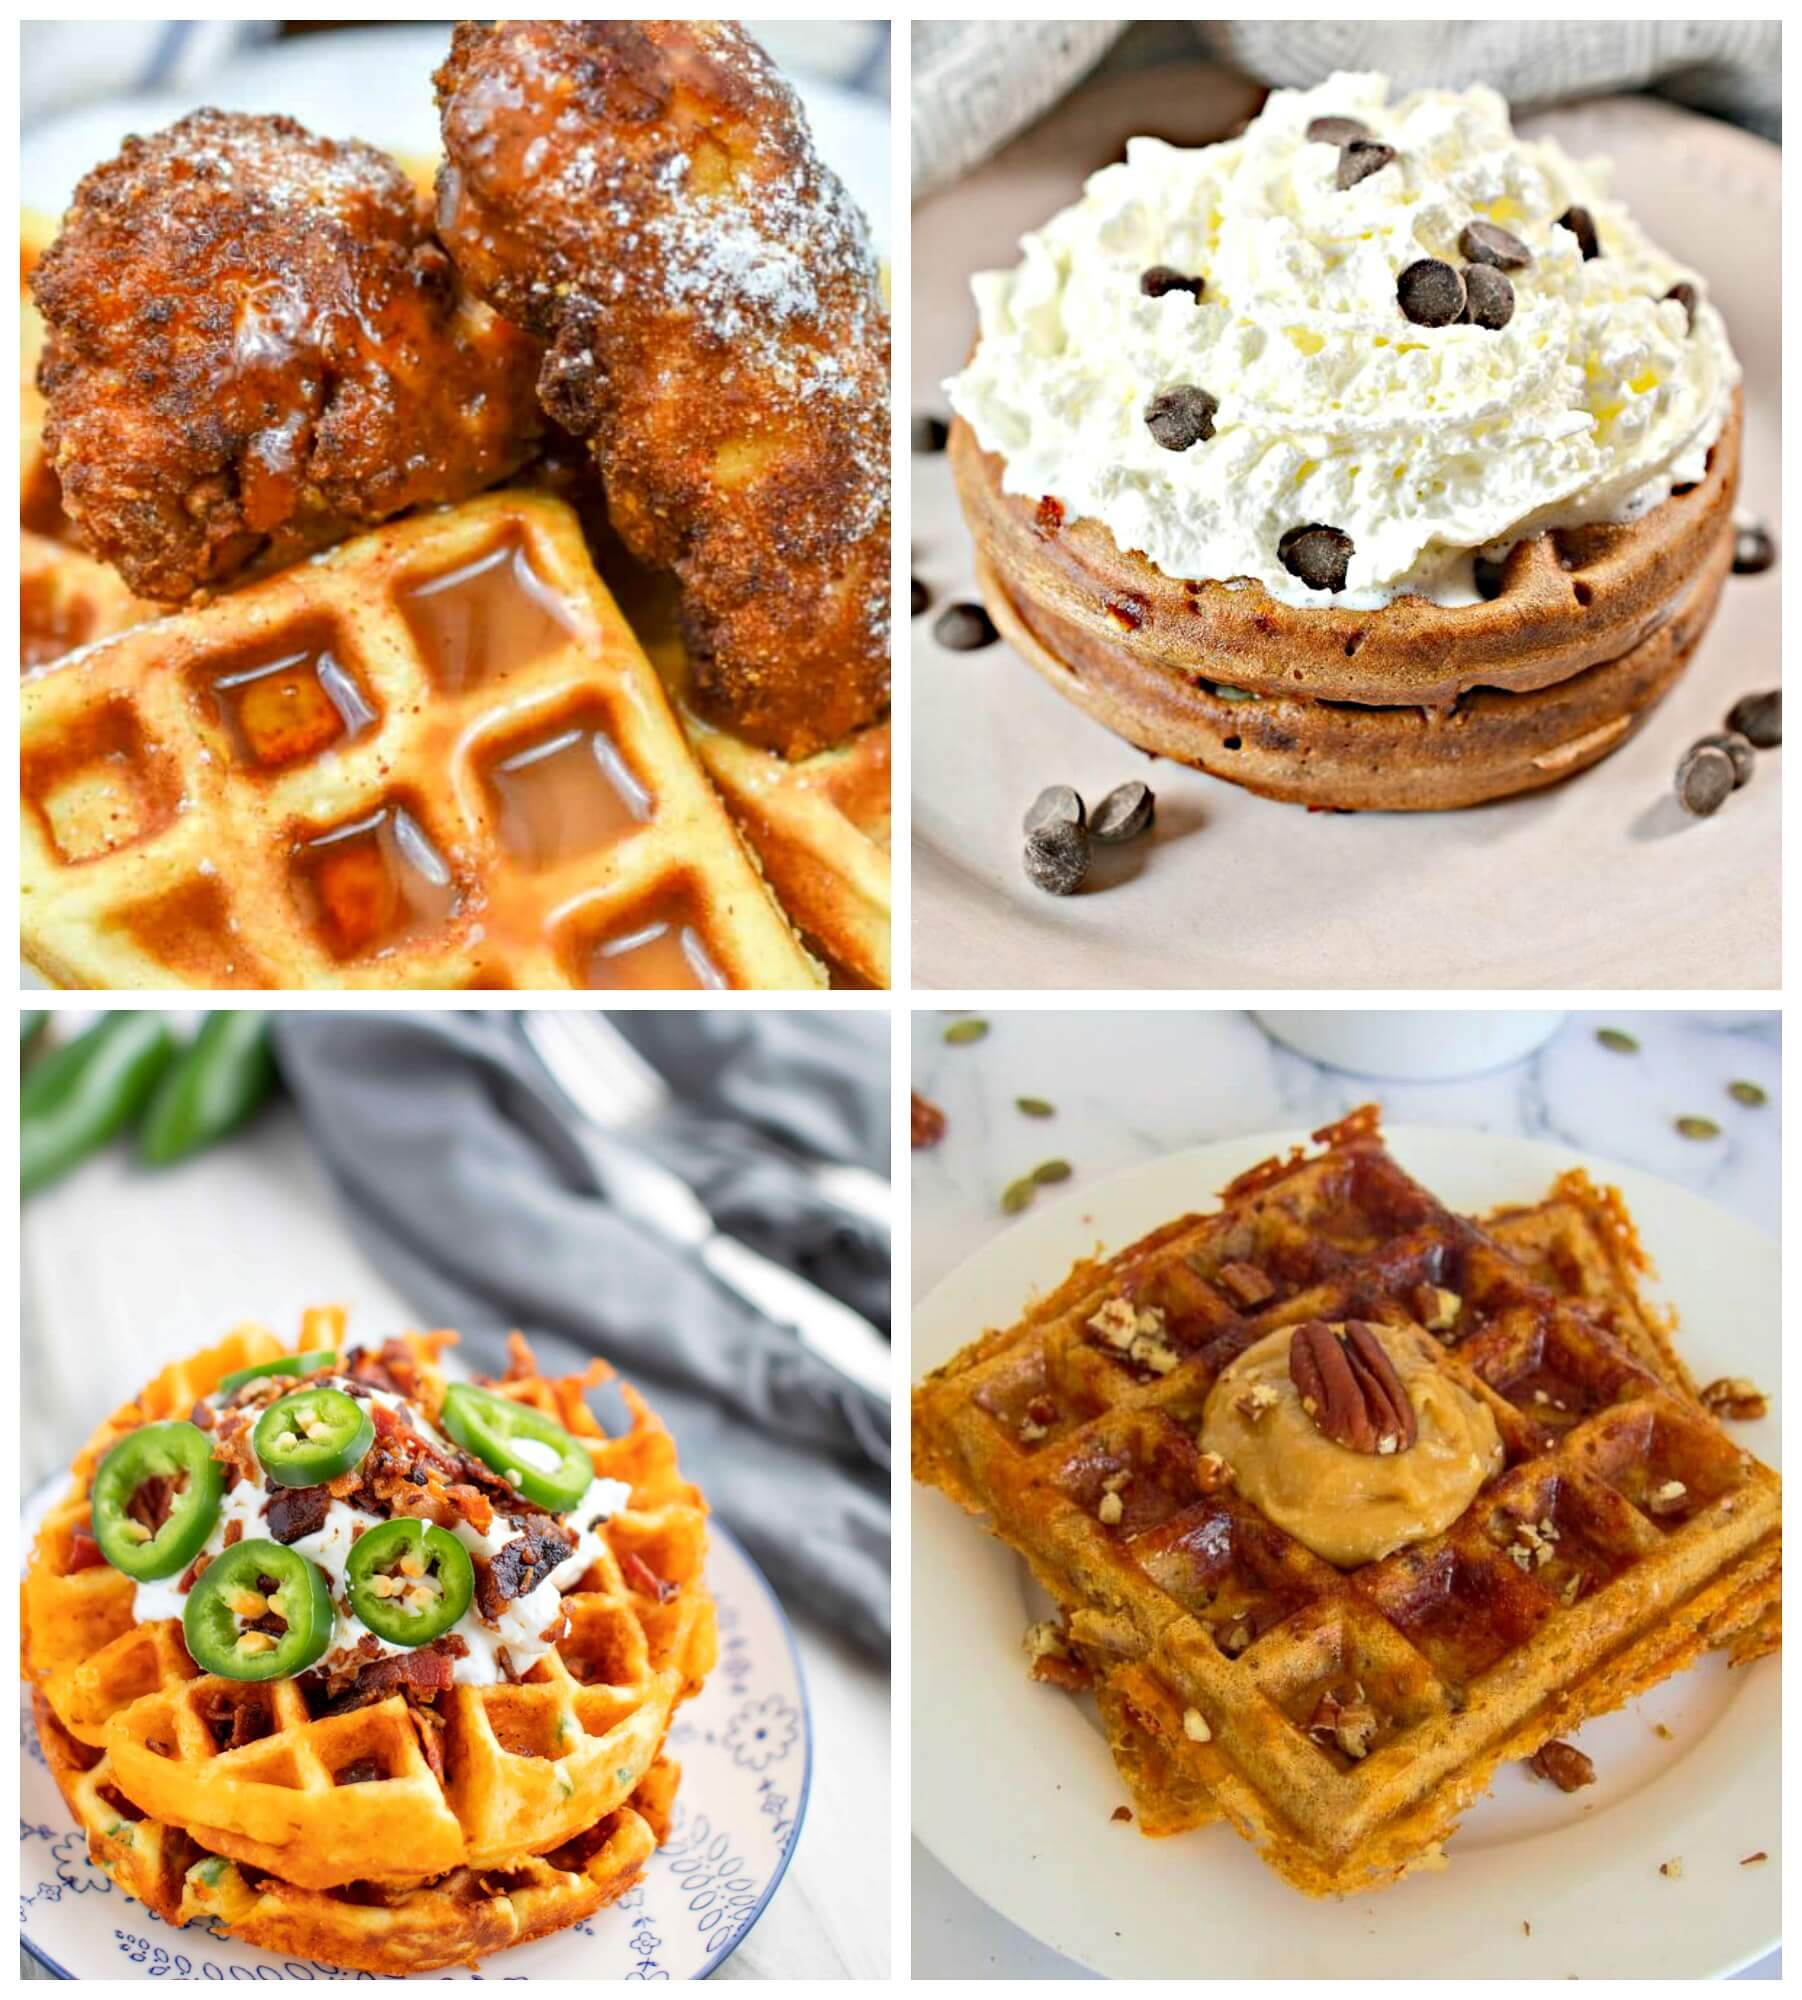 Best Chaffle Recipes you'll want to try